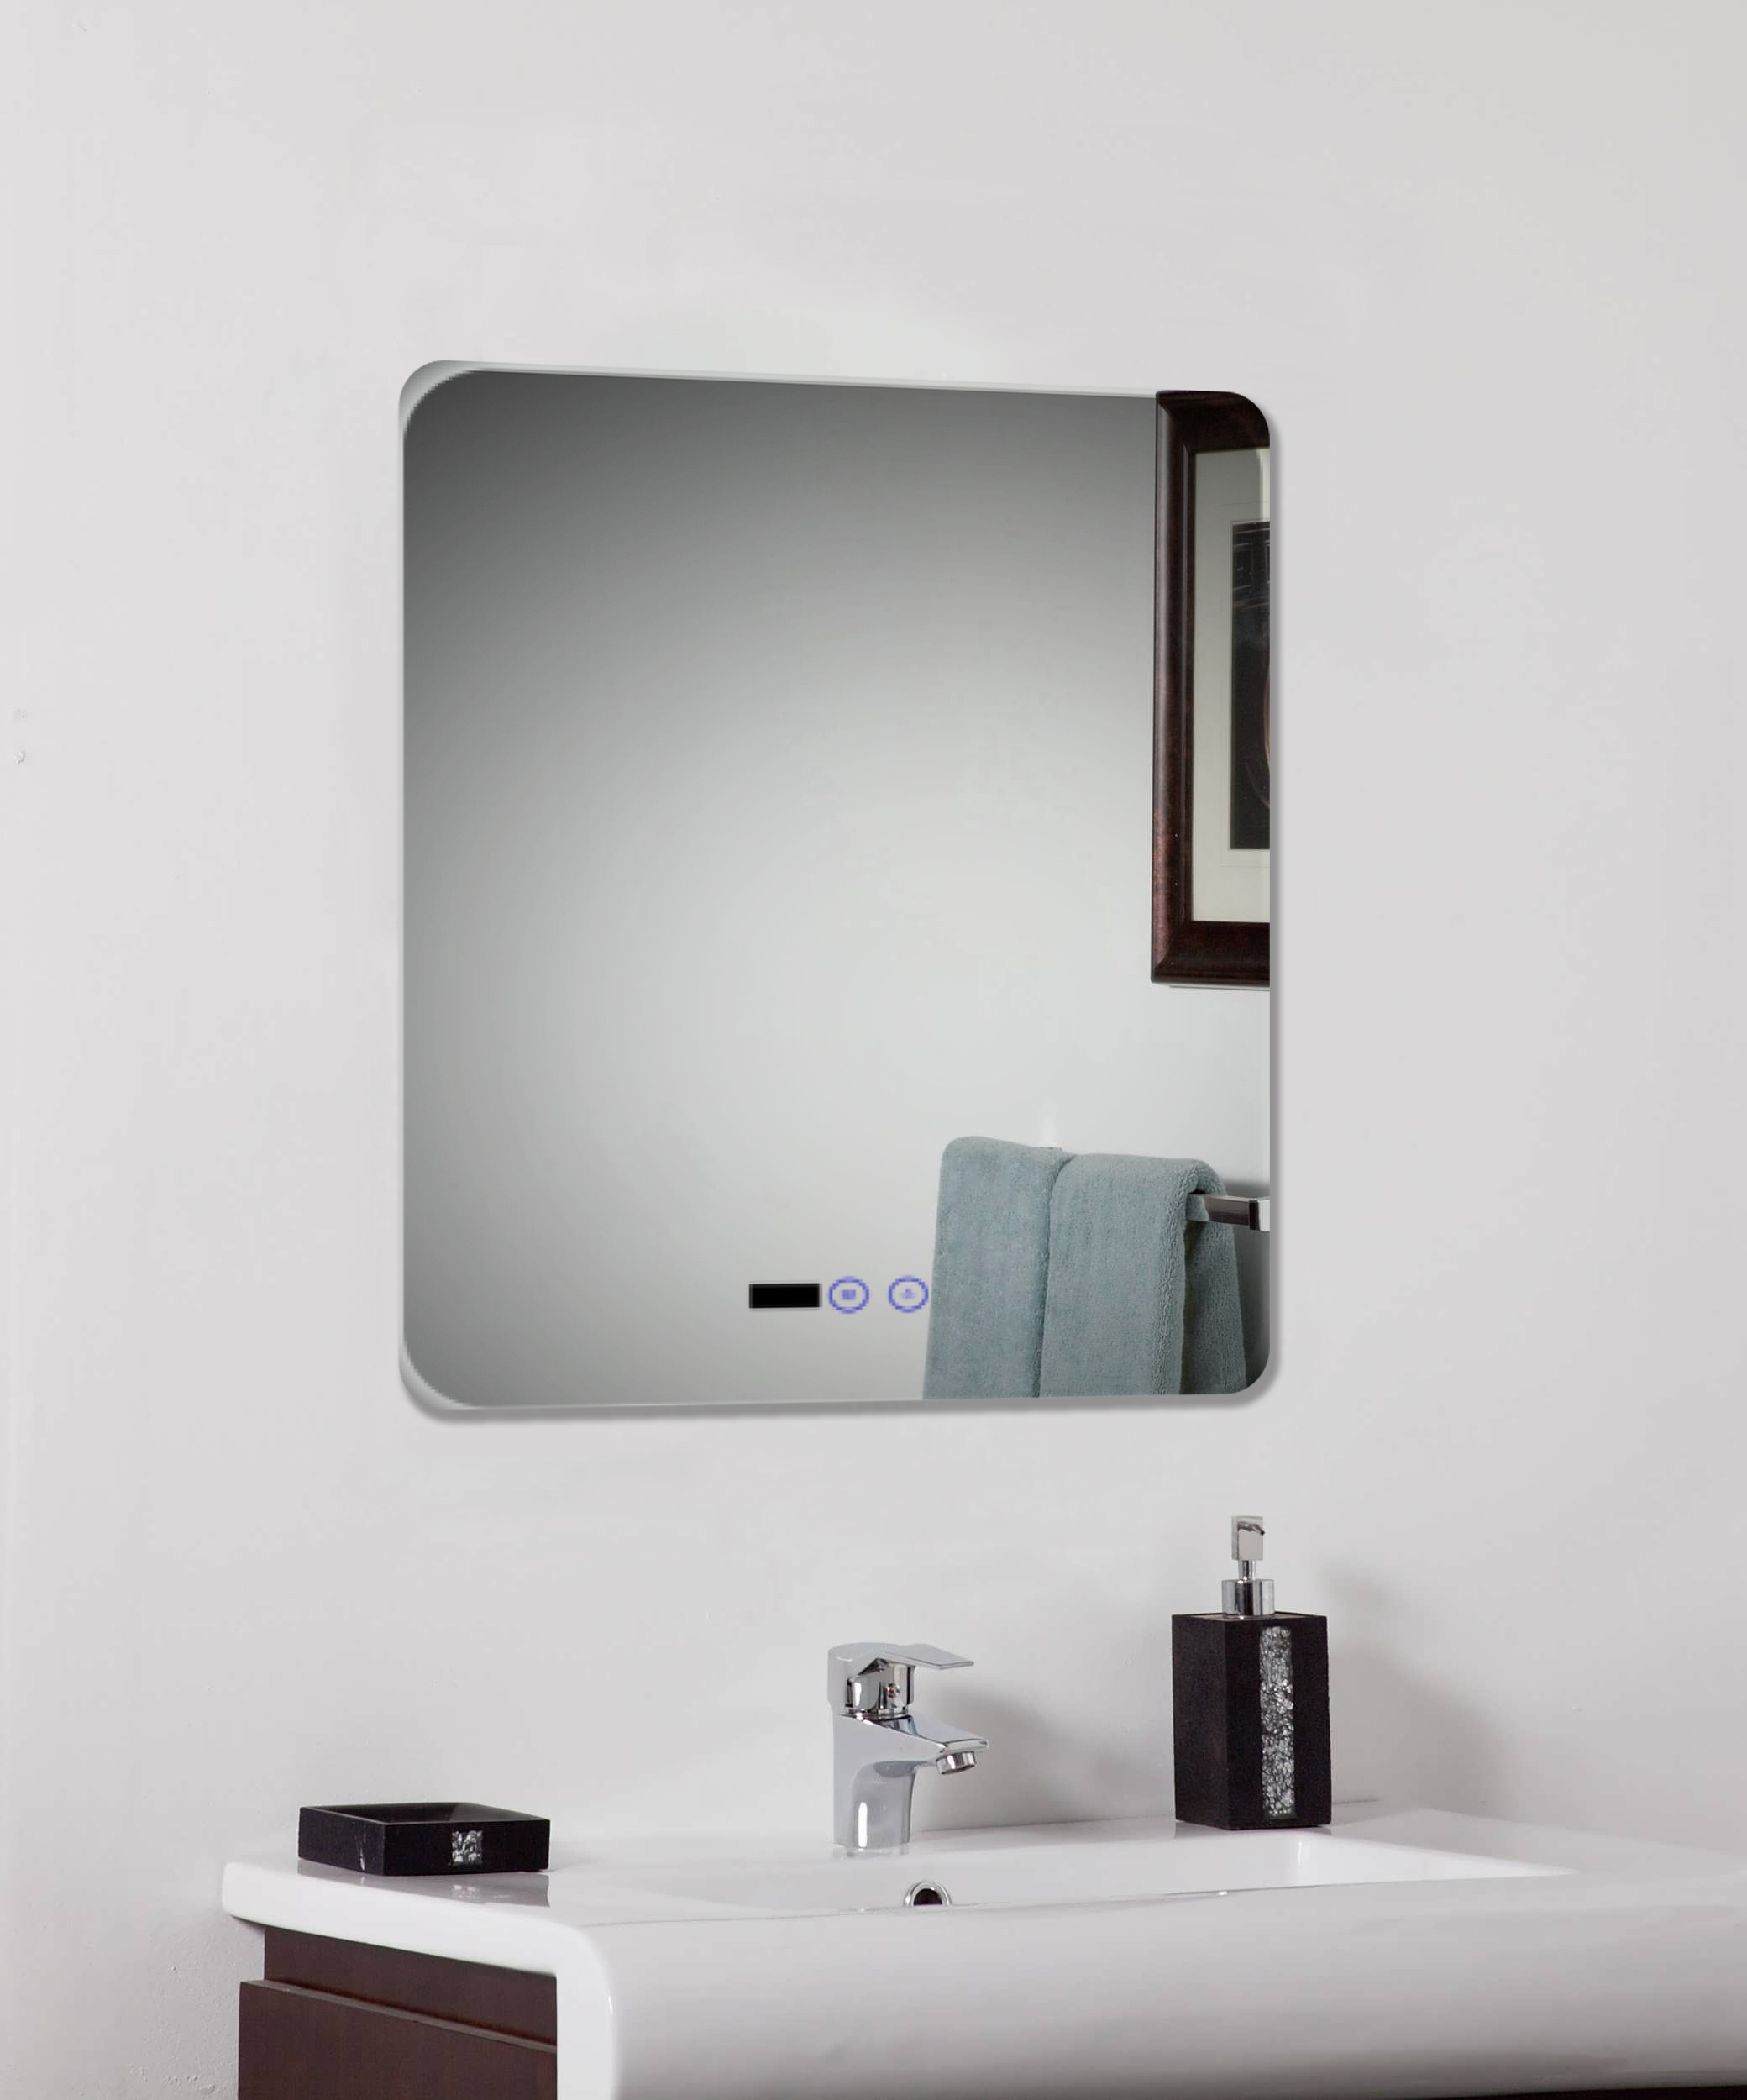 FDO LED ID2 Bathroom mirror with digital clock heated pad and sensor ...